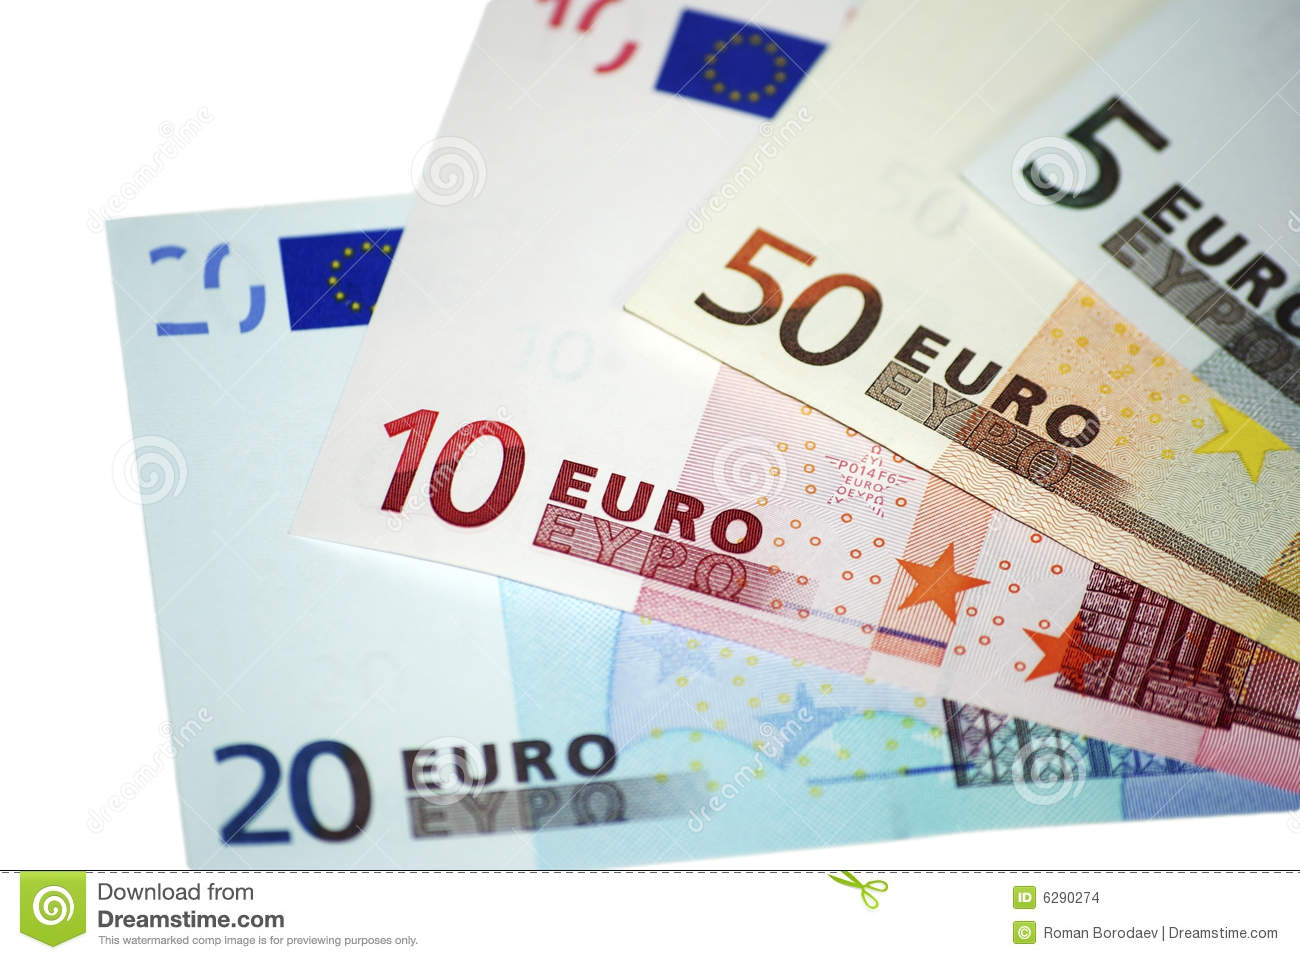 research papers euro currency market The purpose of this paper is analyse the factors that influence conditions in the euro-currency market, focusing separately on demand and supply factors the pa.